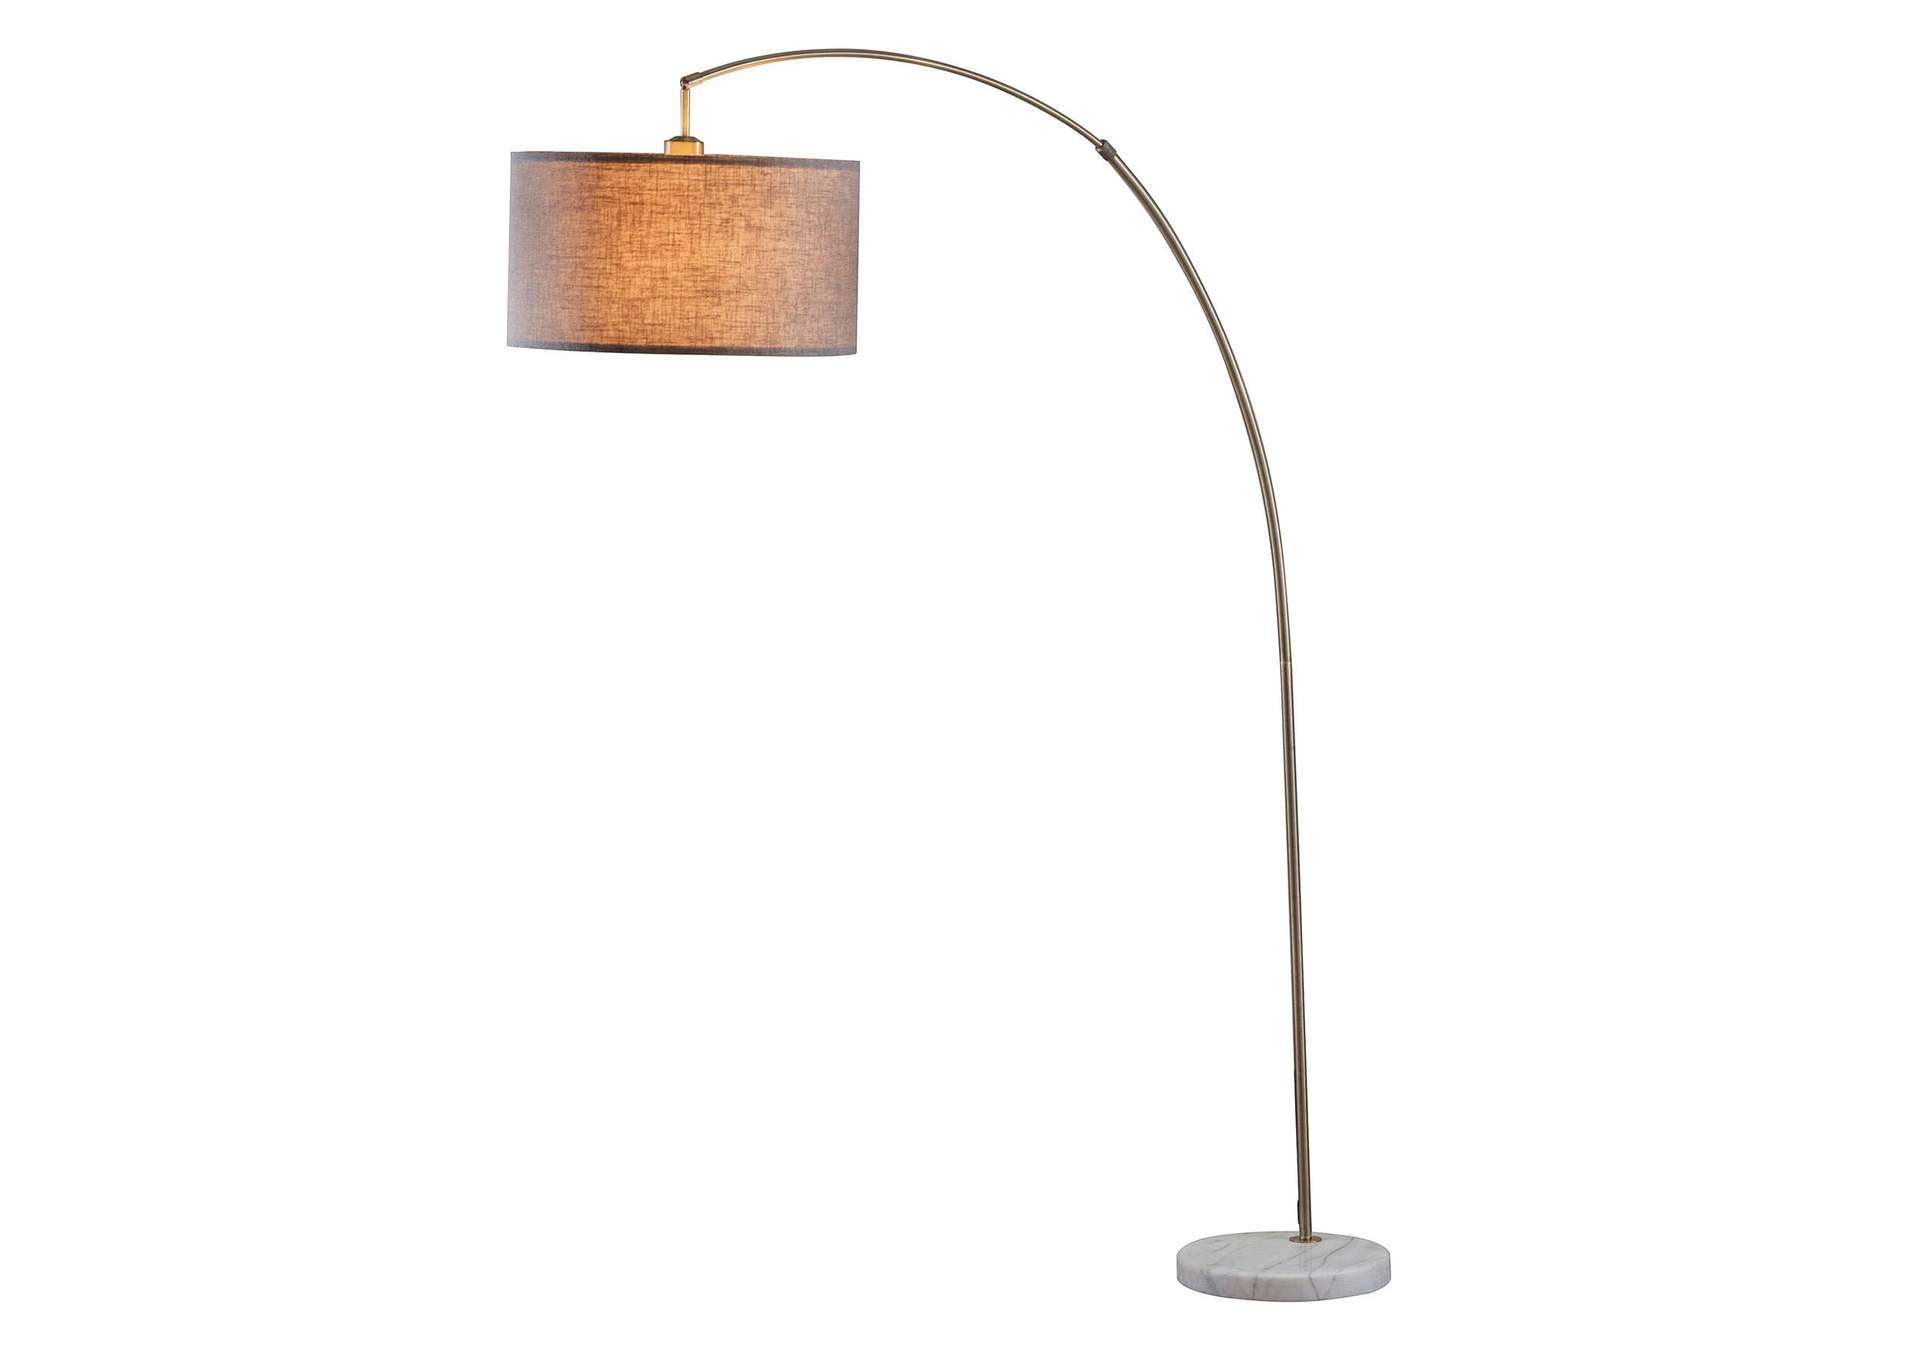 Cagney Antique Brass/Marble Floor Lamp,Acme